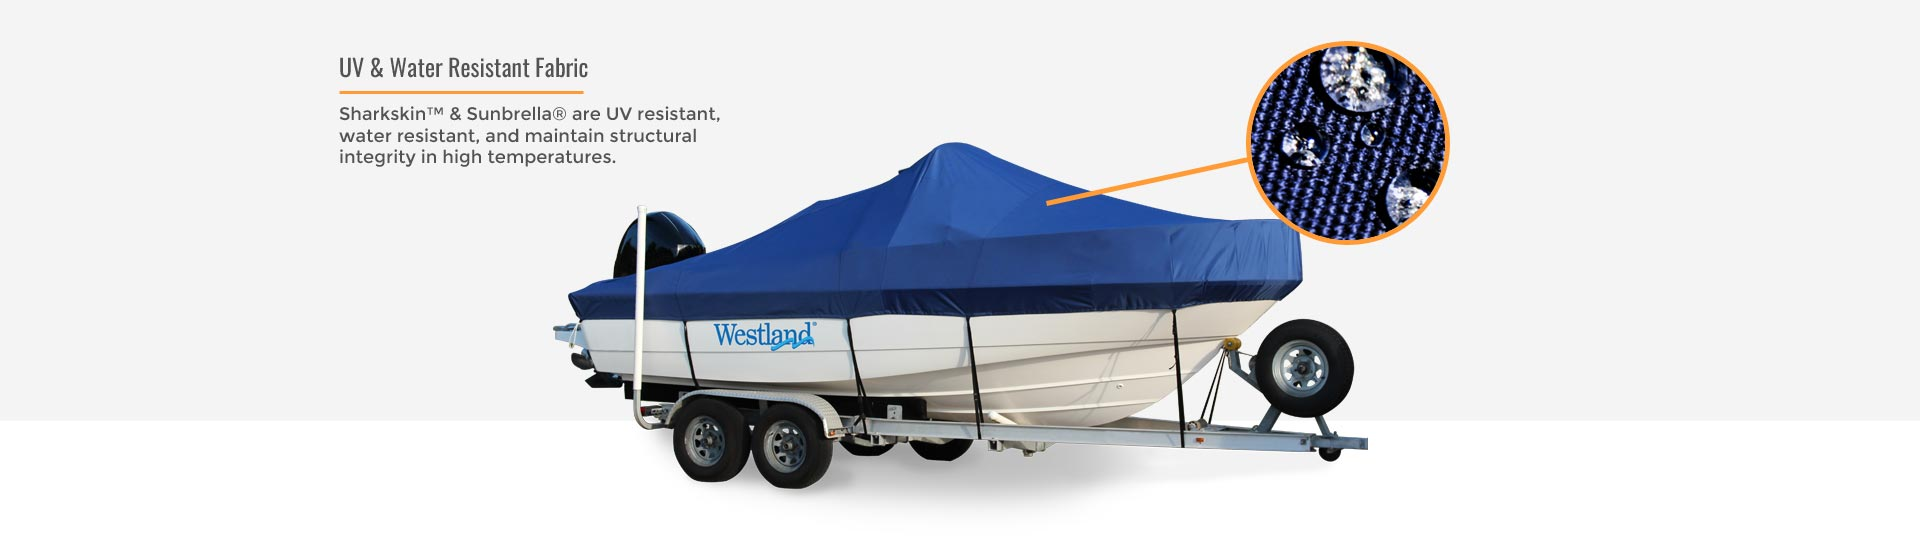 Westland boat cover fabric